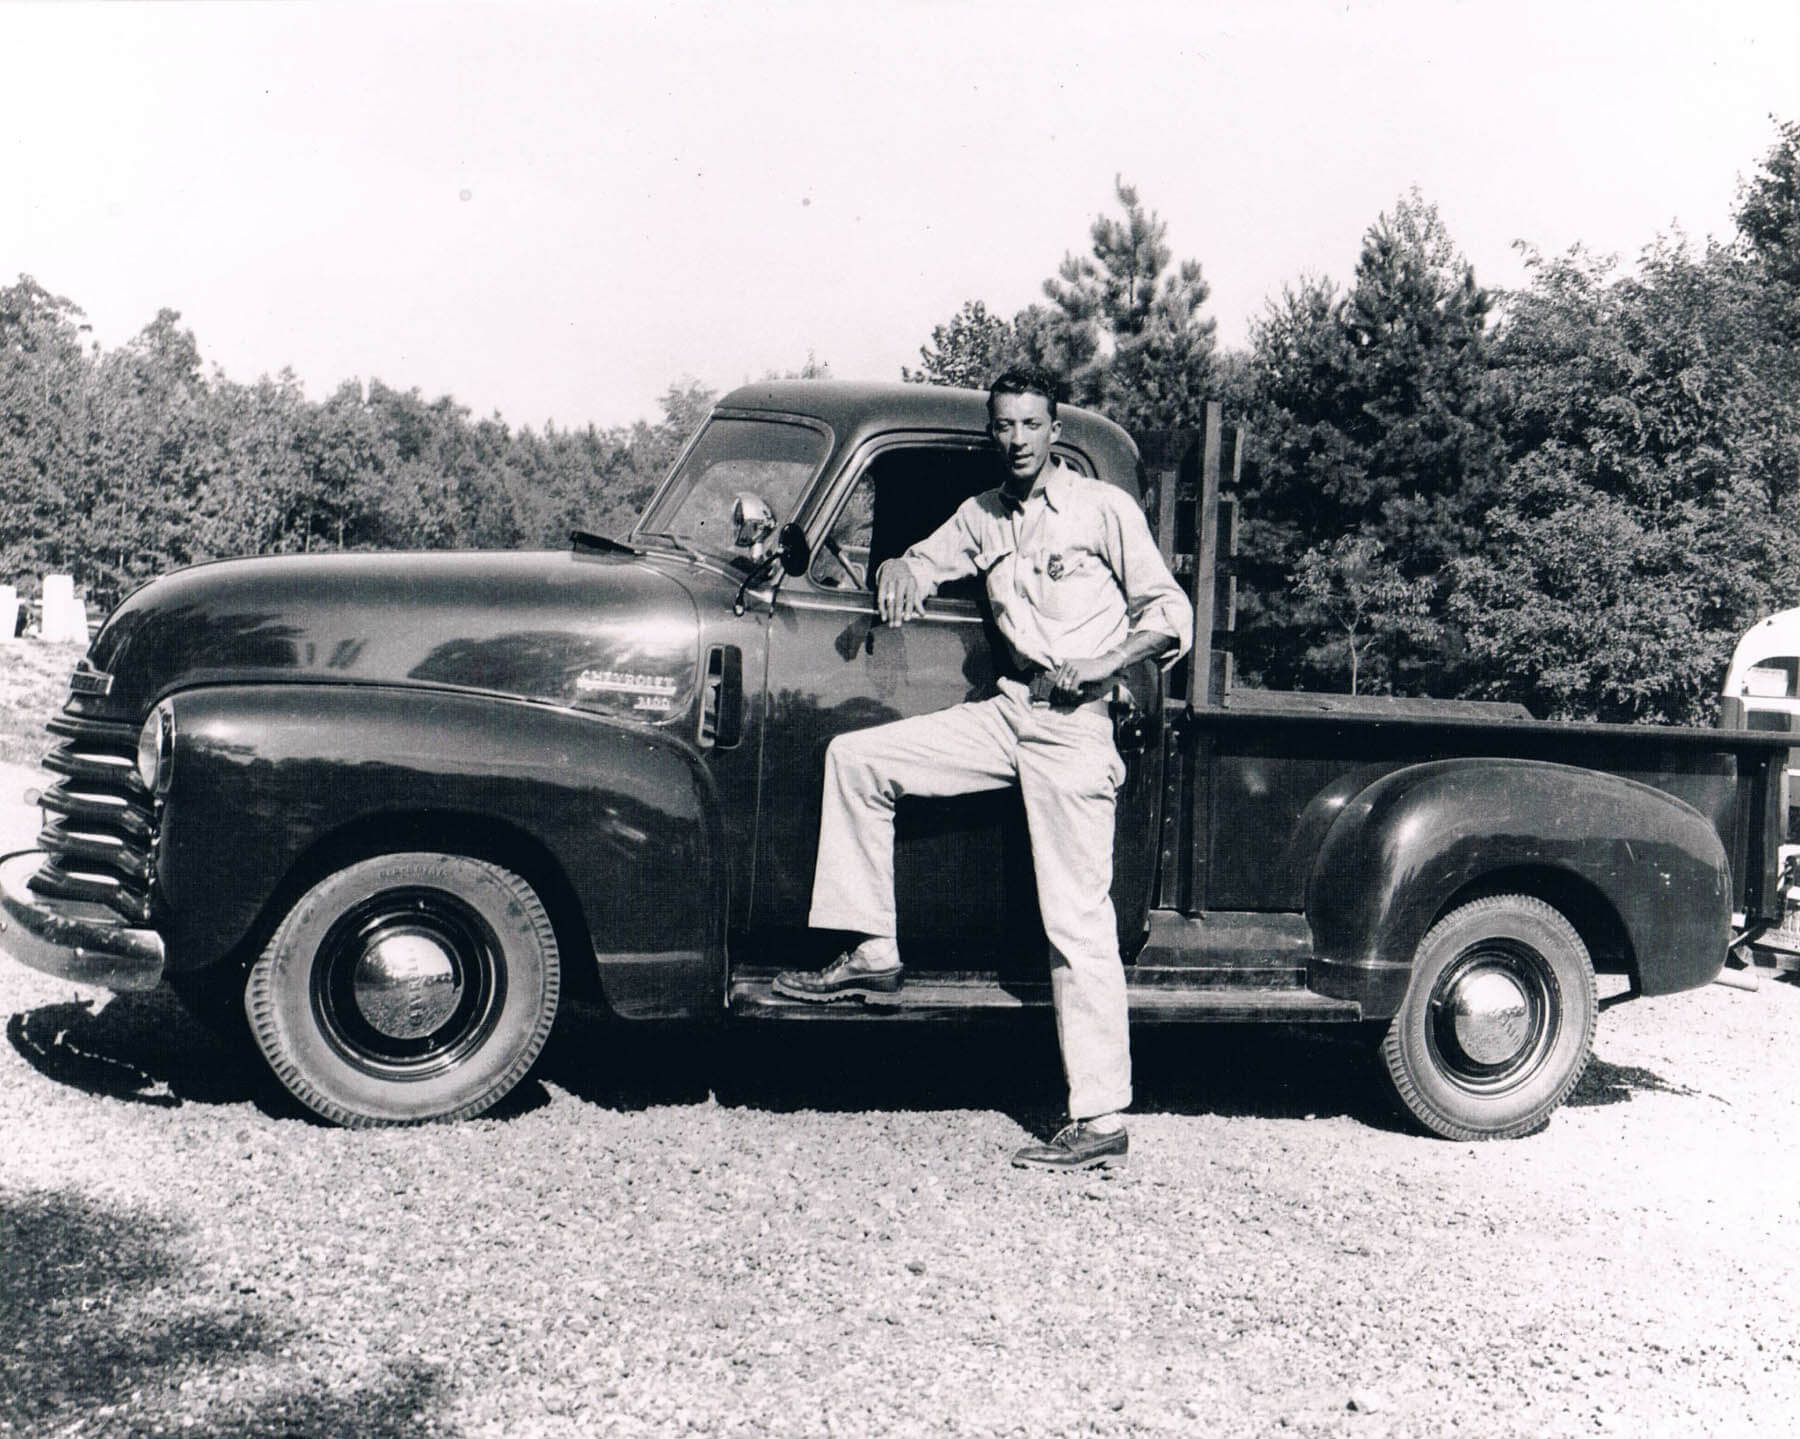 Superintendent Latham at Prince Edward State Park poses by a truck.